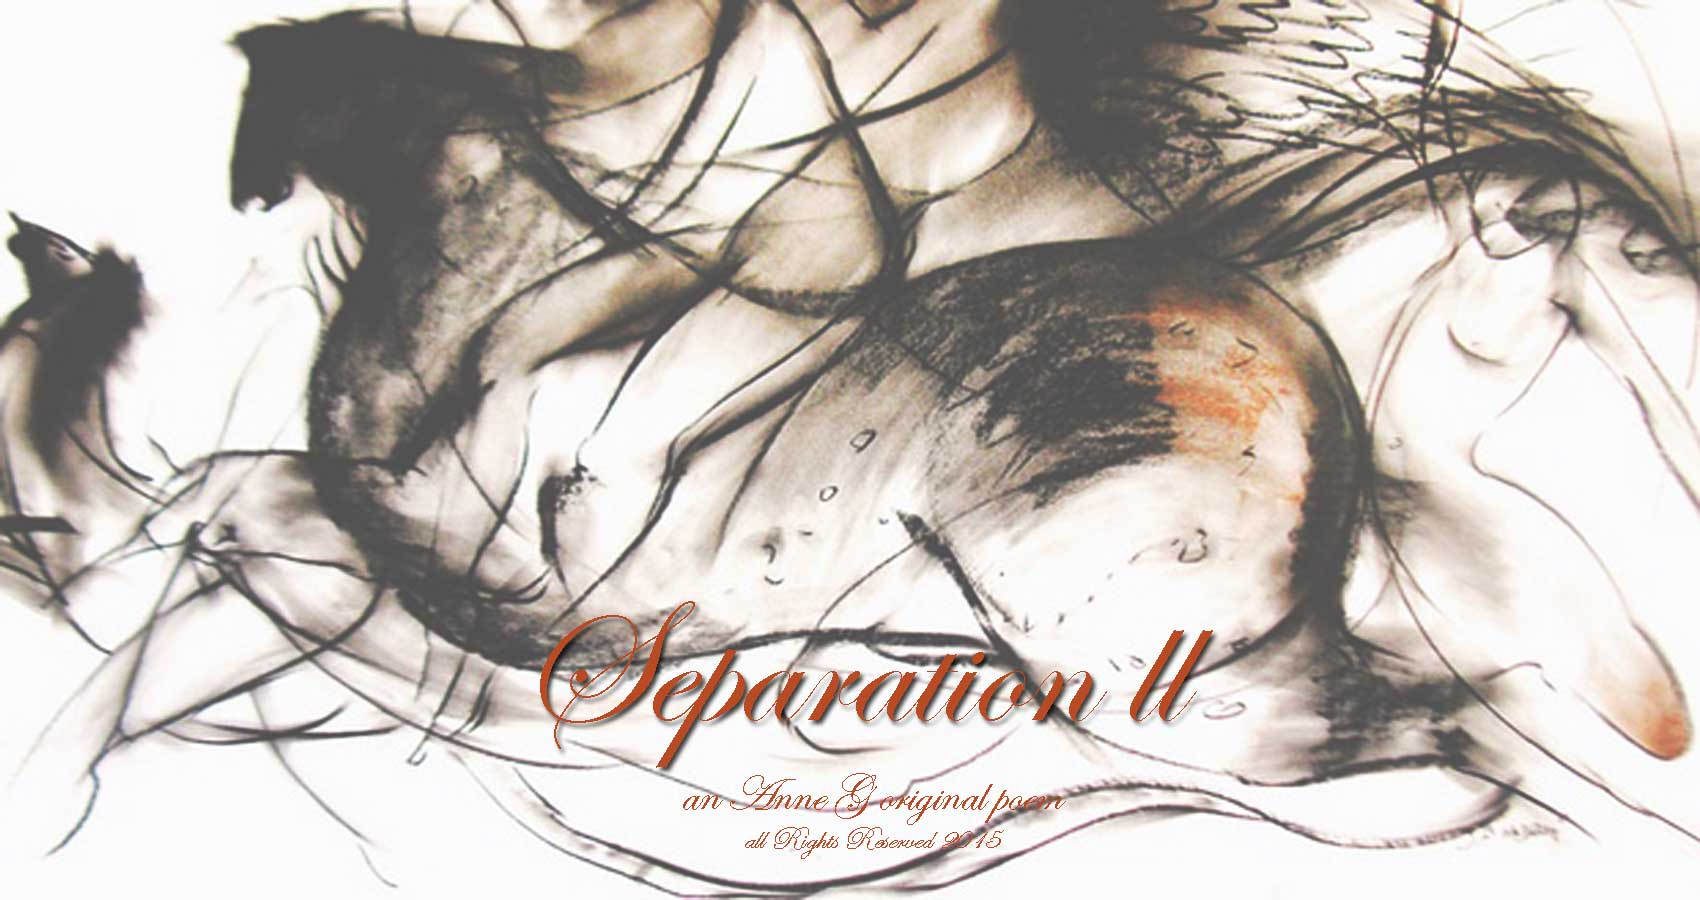 Separation II a spillwords.com original by Anne G